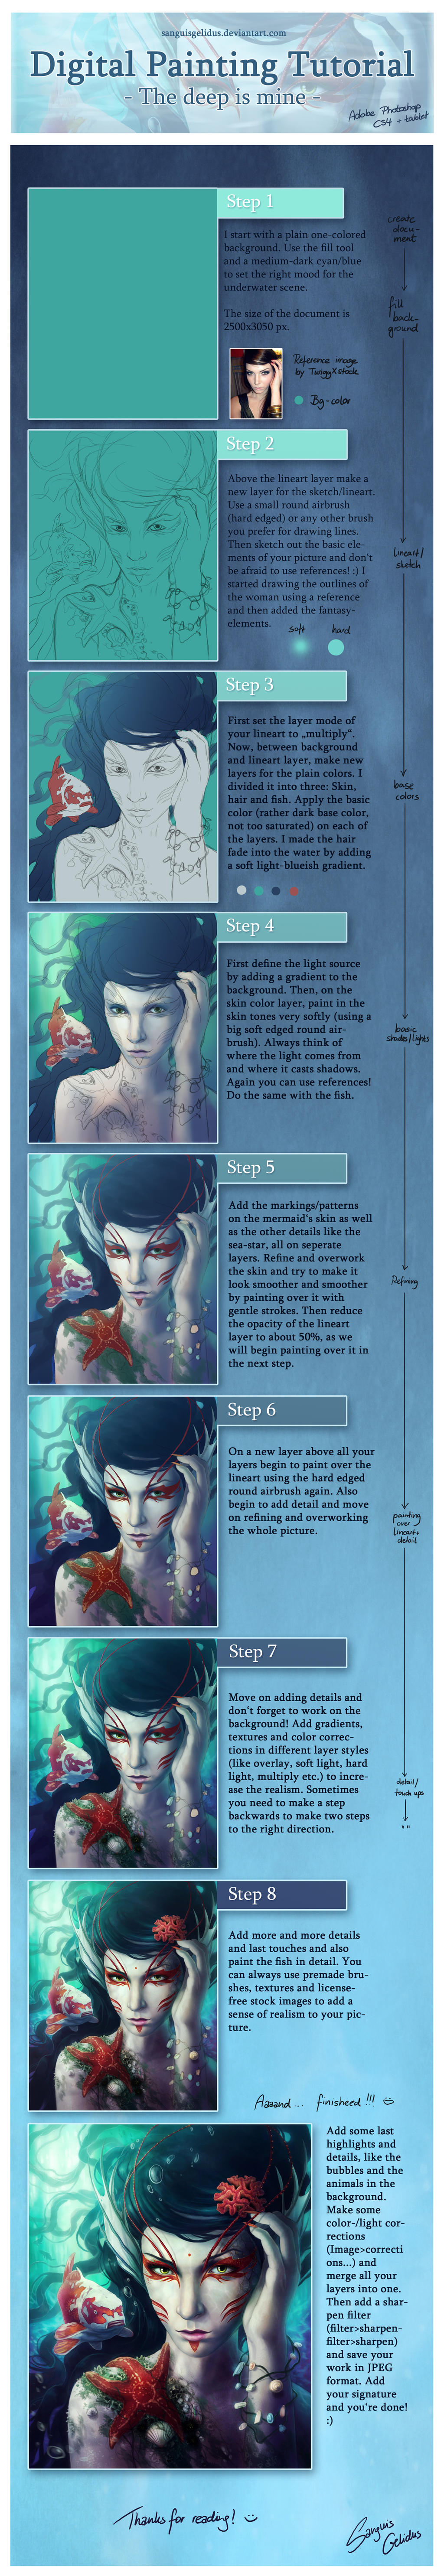 Digital painting tutorial by jojoesart on deviantart digital painting tutorial by jojoesart digital painting tutorial by jojoesart baditri Image collections